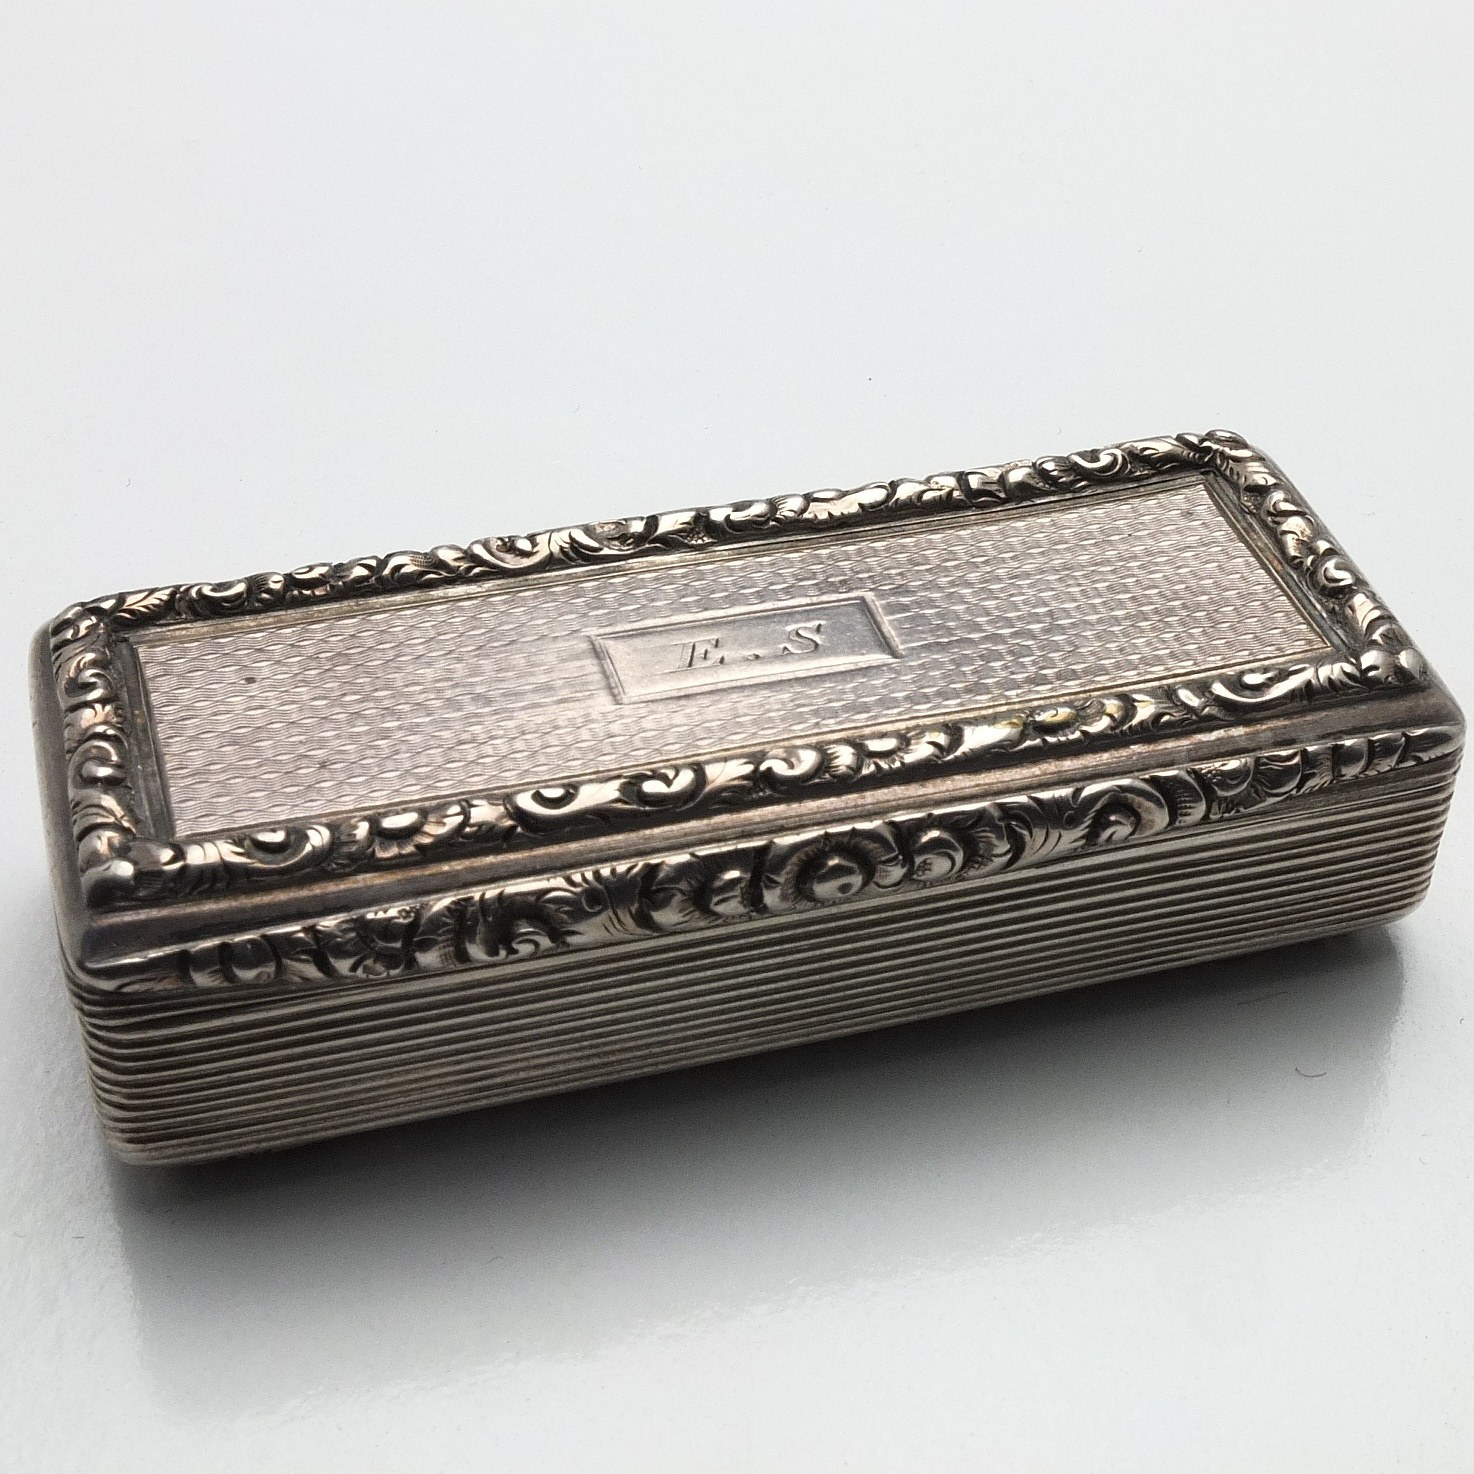 'George III Monogrammed Sterling Silver Engine Turned and Chased Snuff Box William Pugh Birmingham 1809'